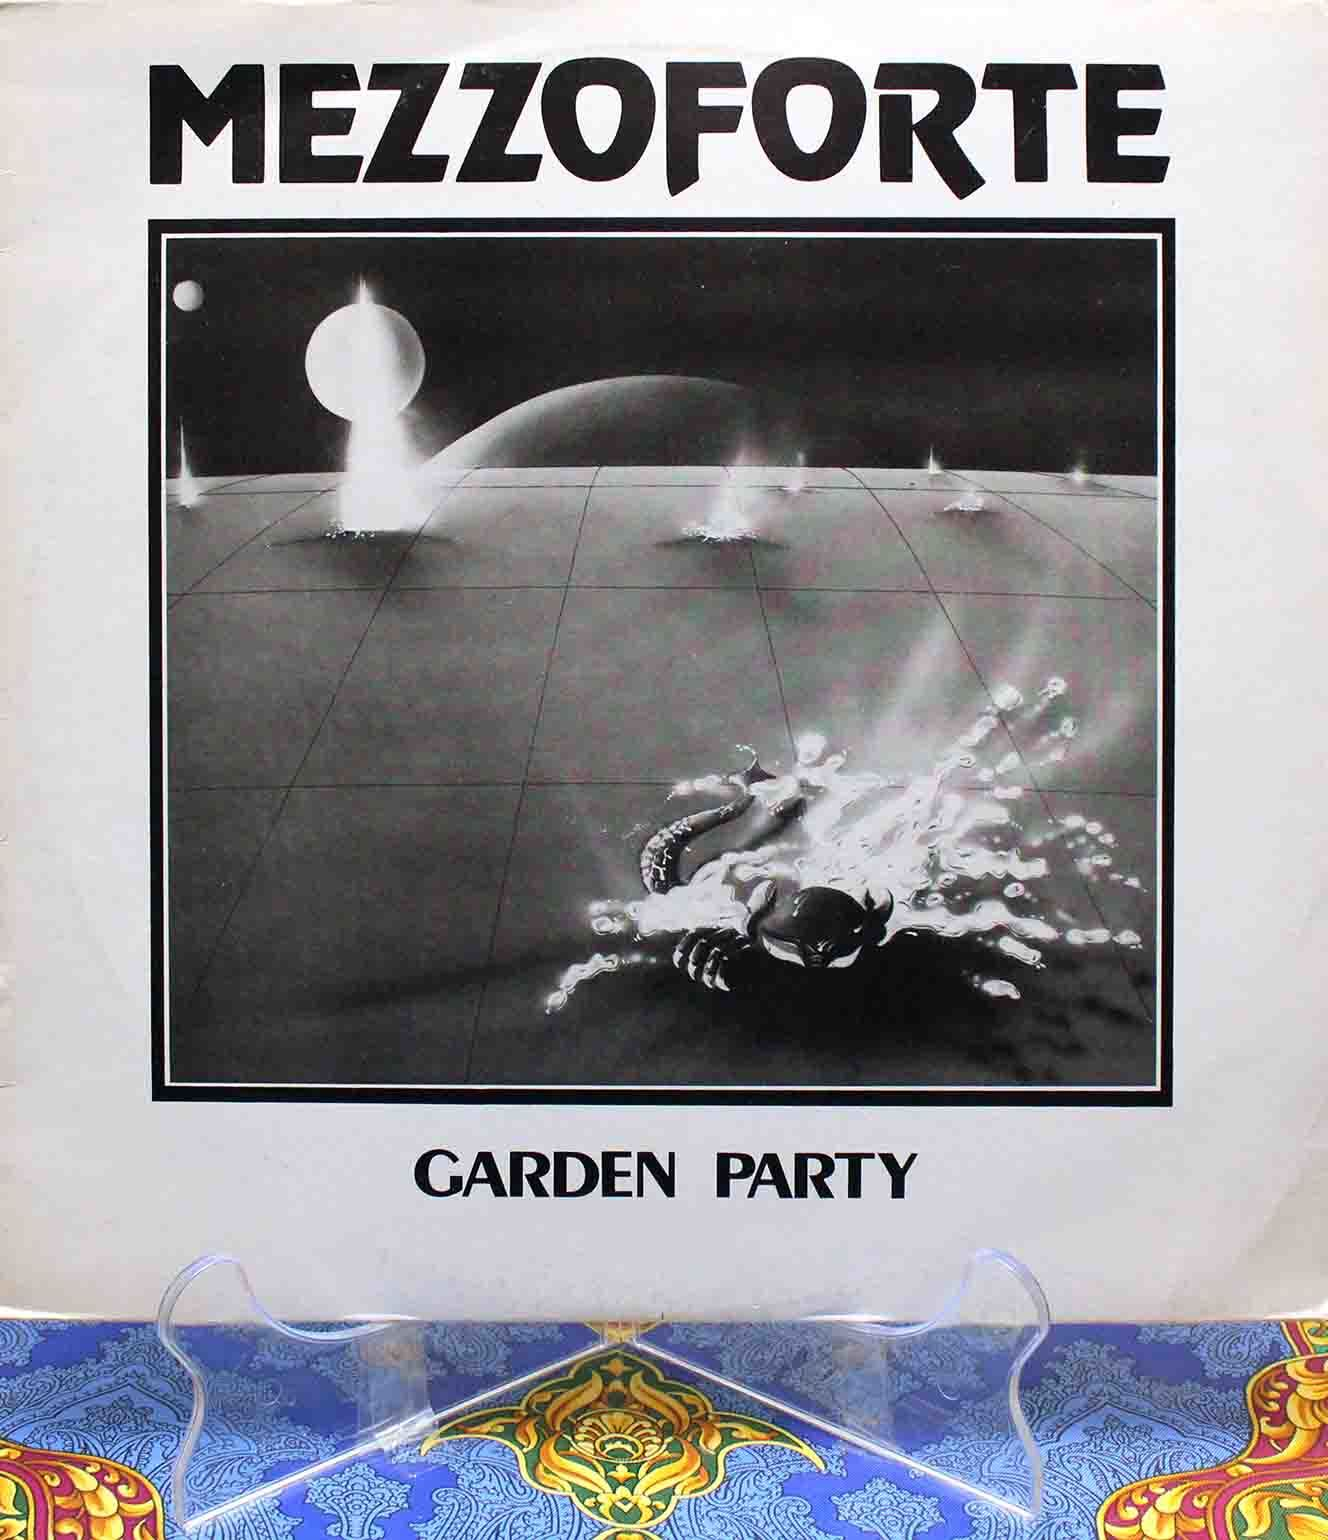 Mezzoforte Garden Party 01